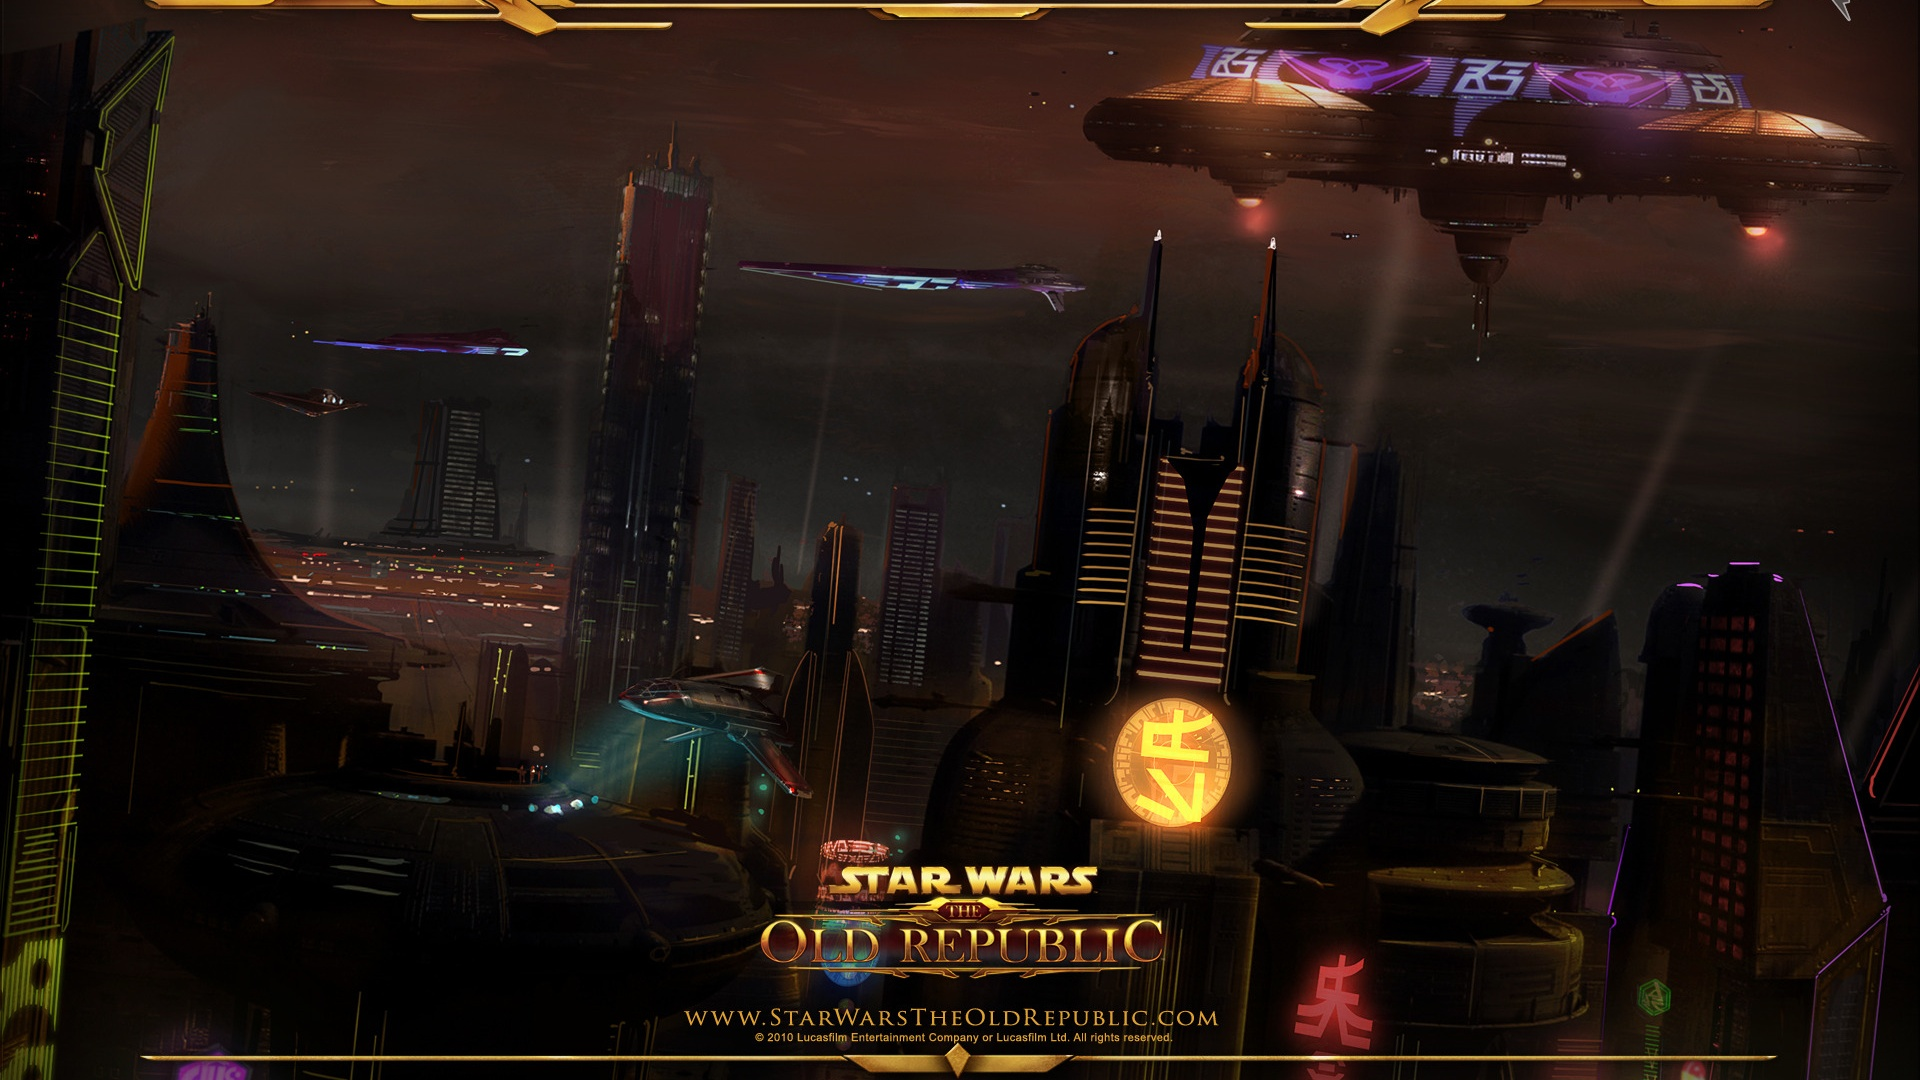 Free Download 1920x1080 Star Wars The Old Republic Desktop Pc And Mac Wallpaper 1920x1080 For Your Desktop Mobile Tablet Explore 49 Swtor Wallpaper 1920x1080 The Old Republic Wallpaper Swtor